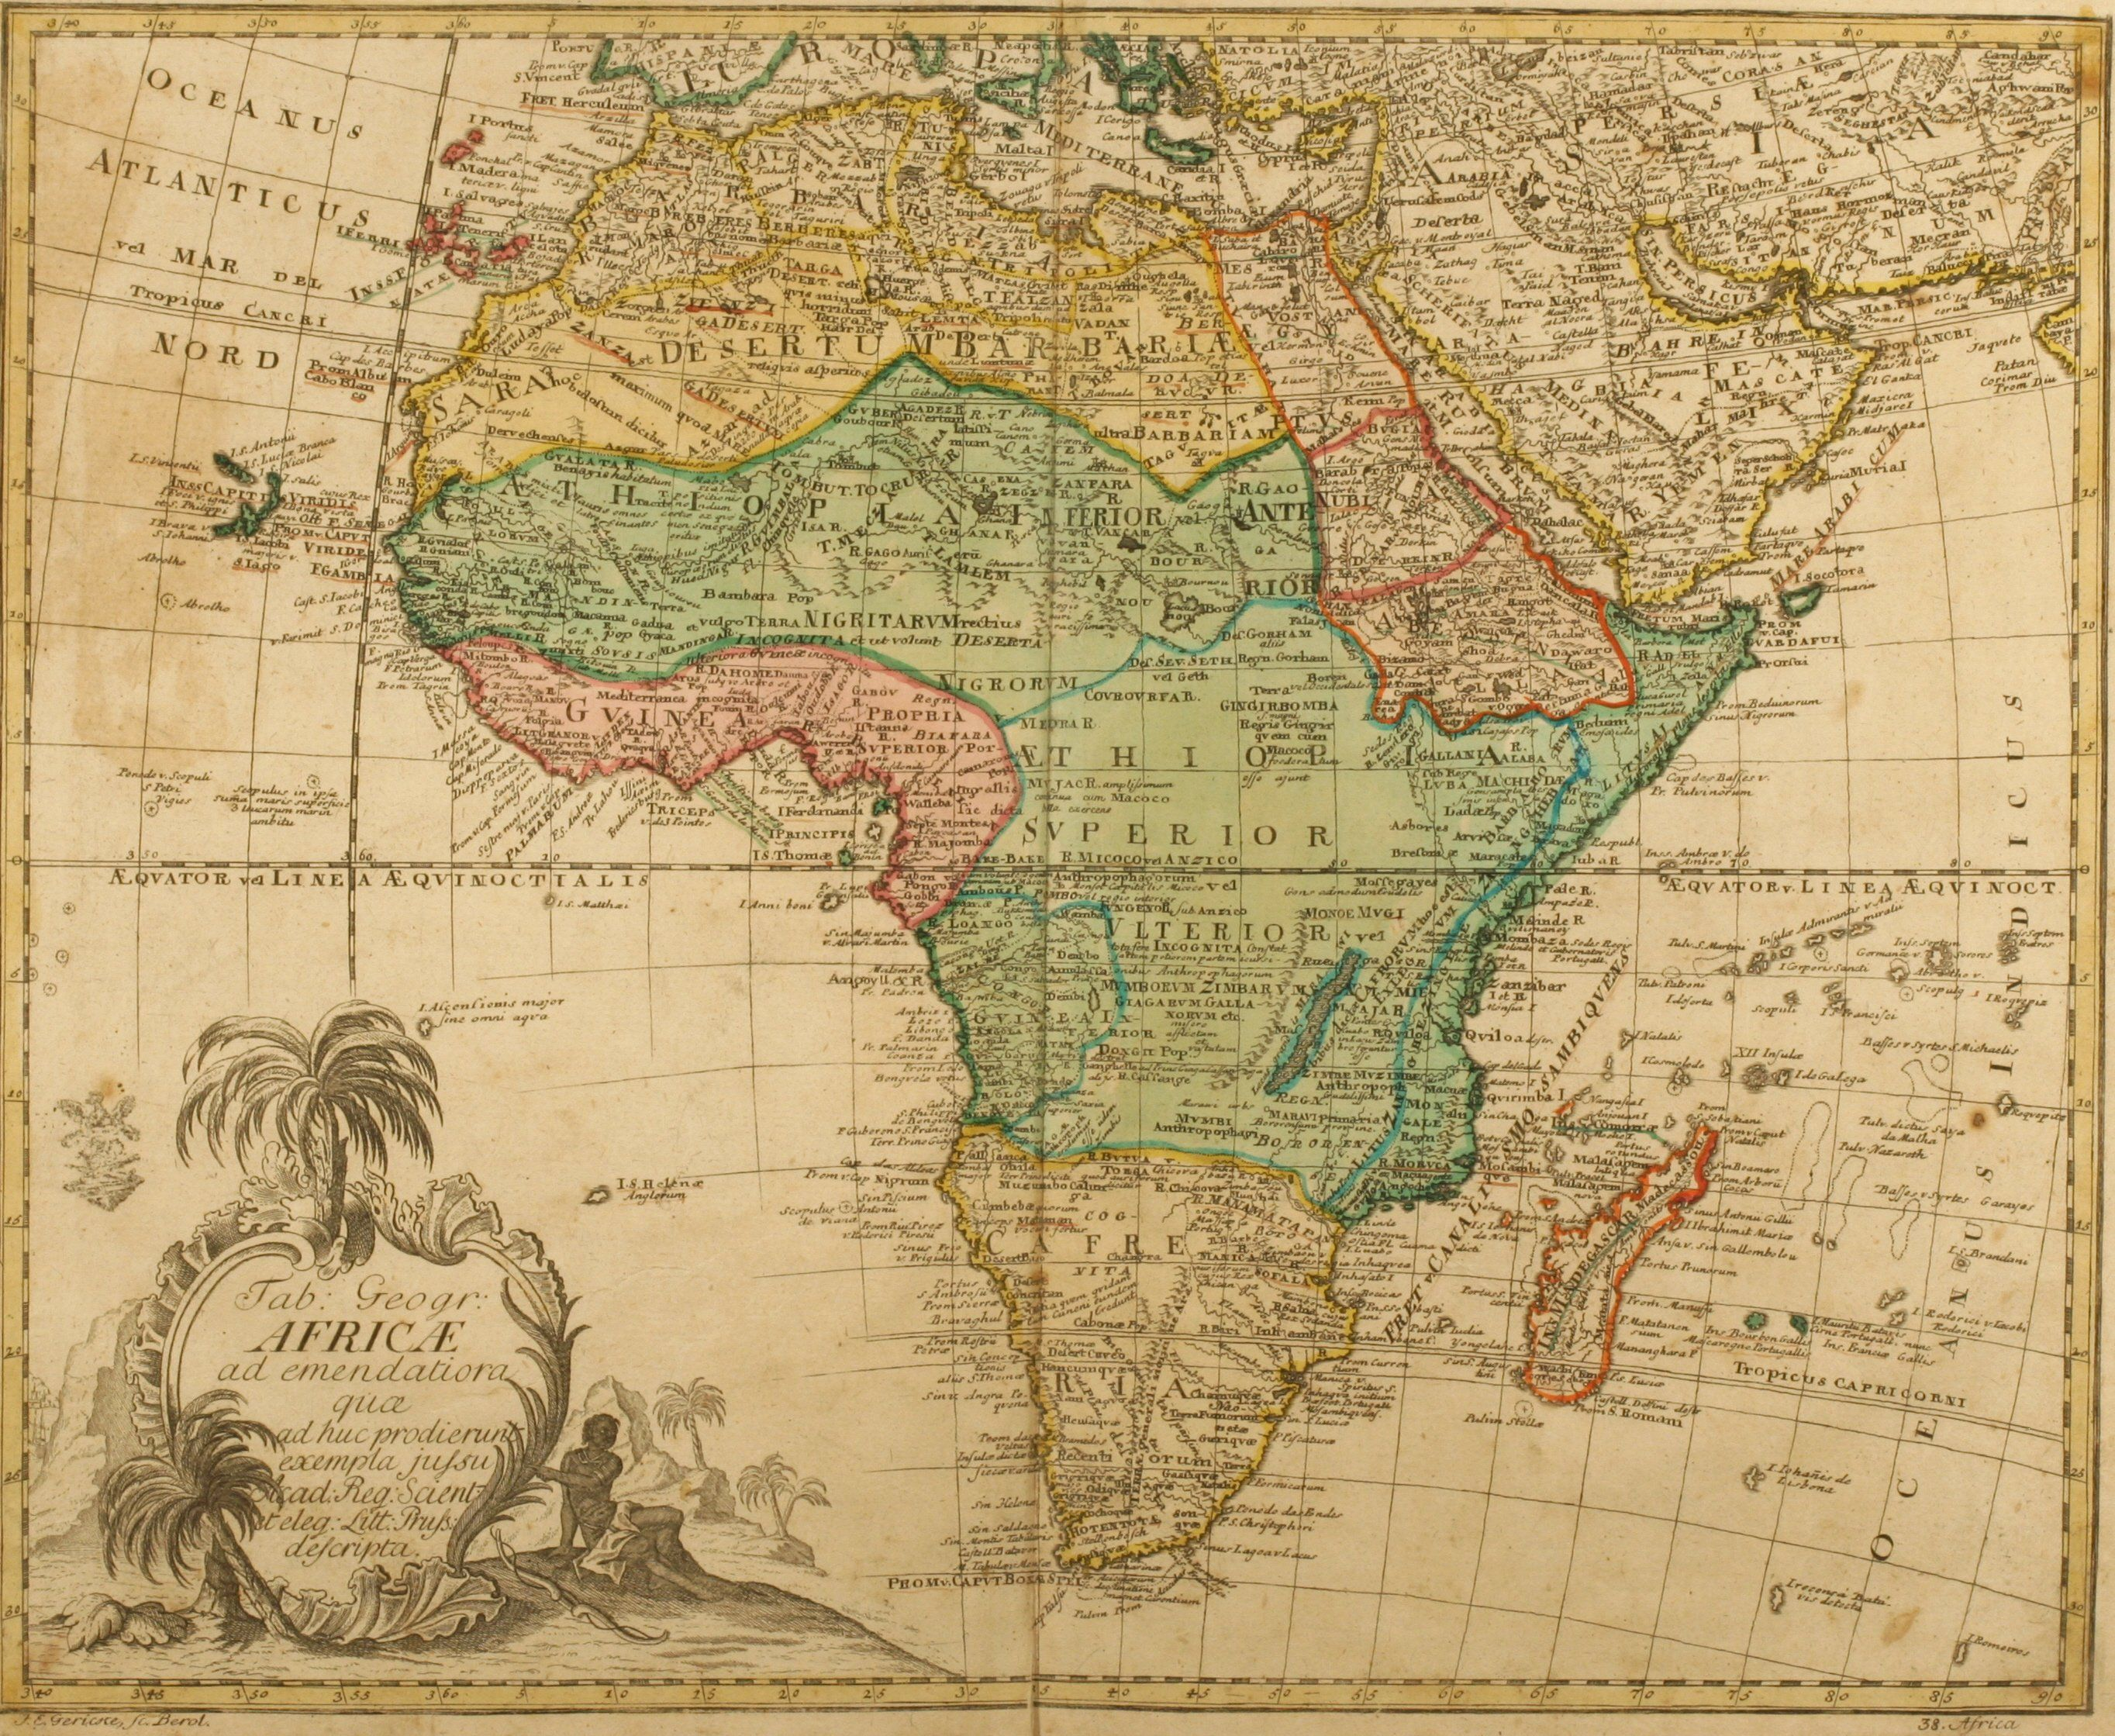 Africa, 1760  - link isn't directly to this map (you have to